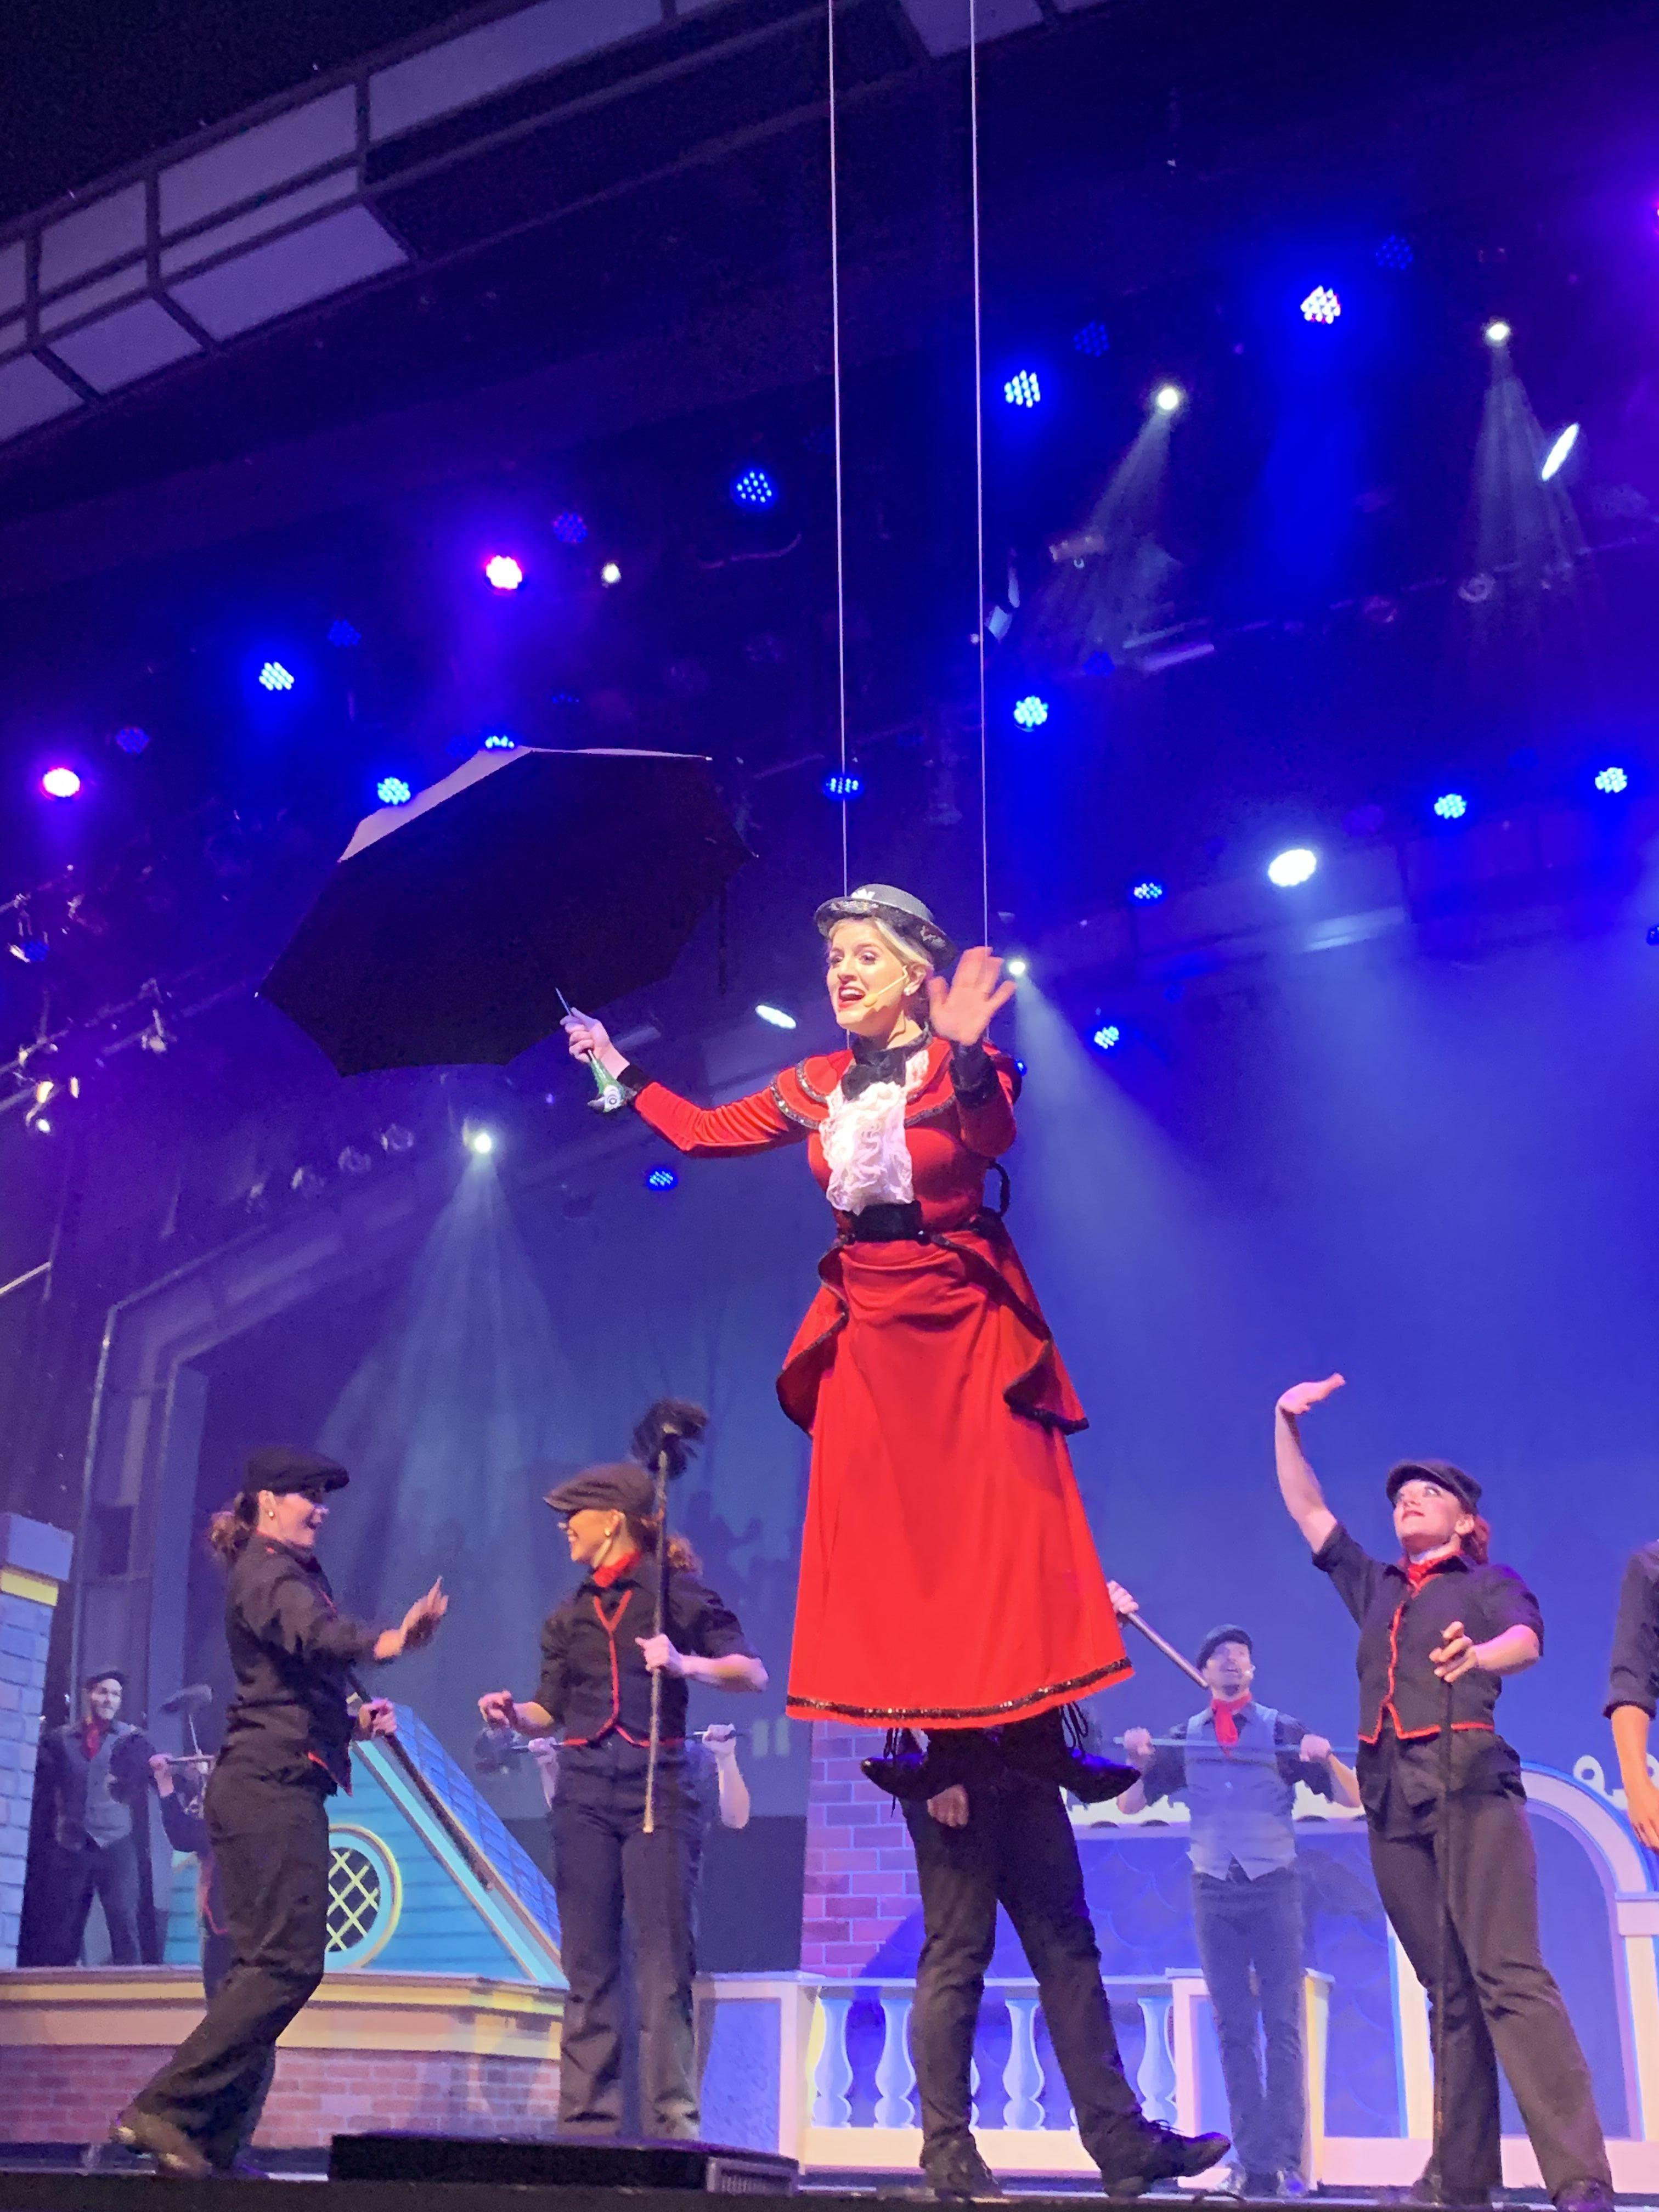 Mary Poppins at the Smoky Mountain Opry Variety Show